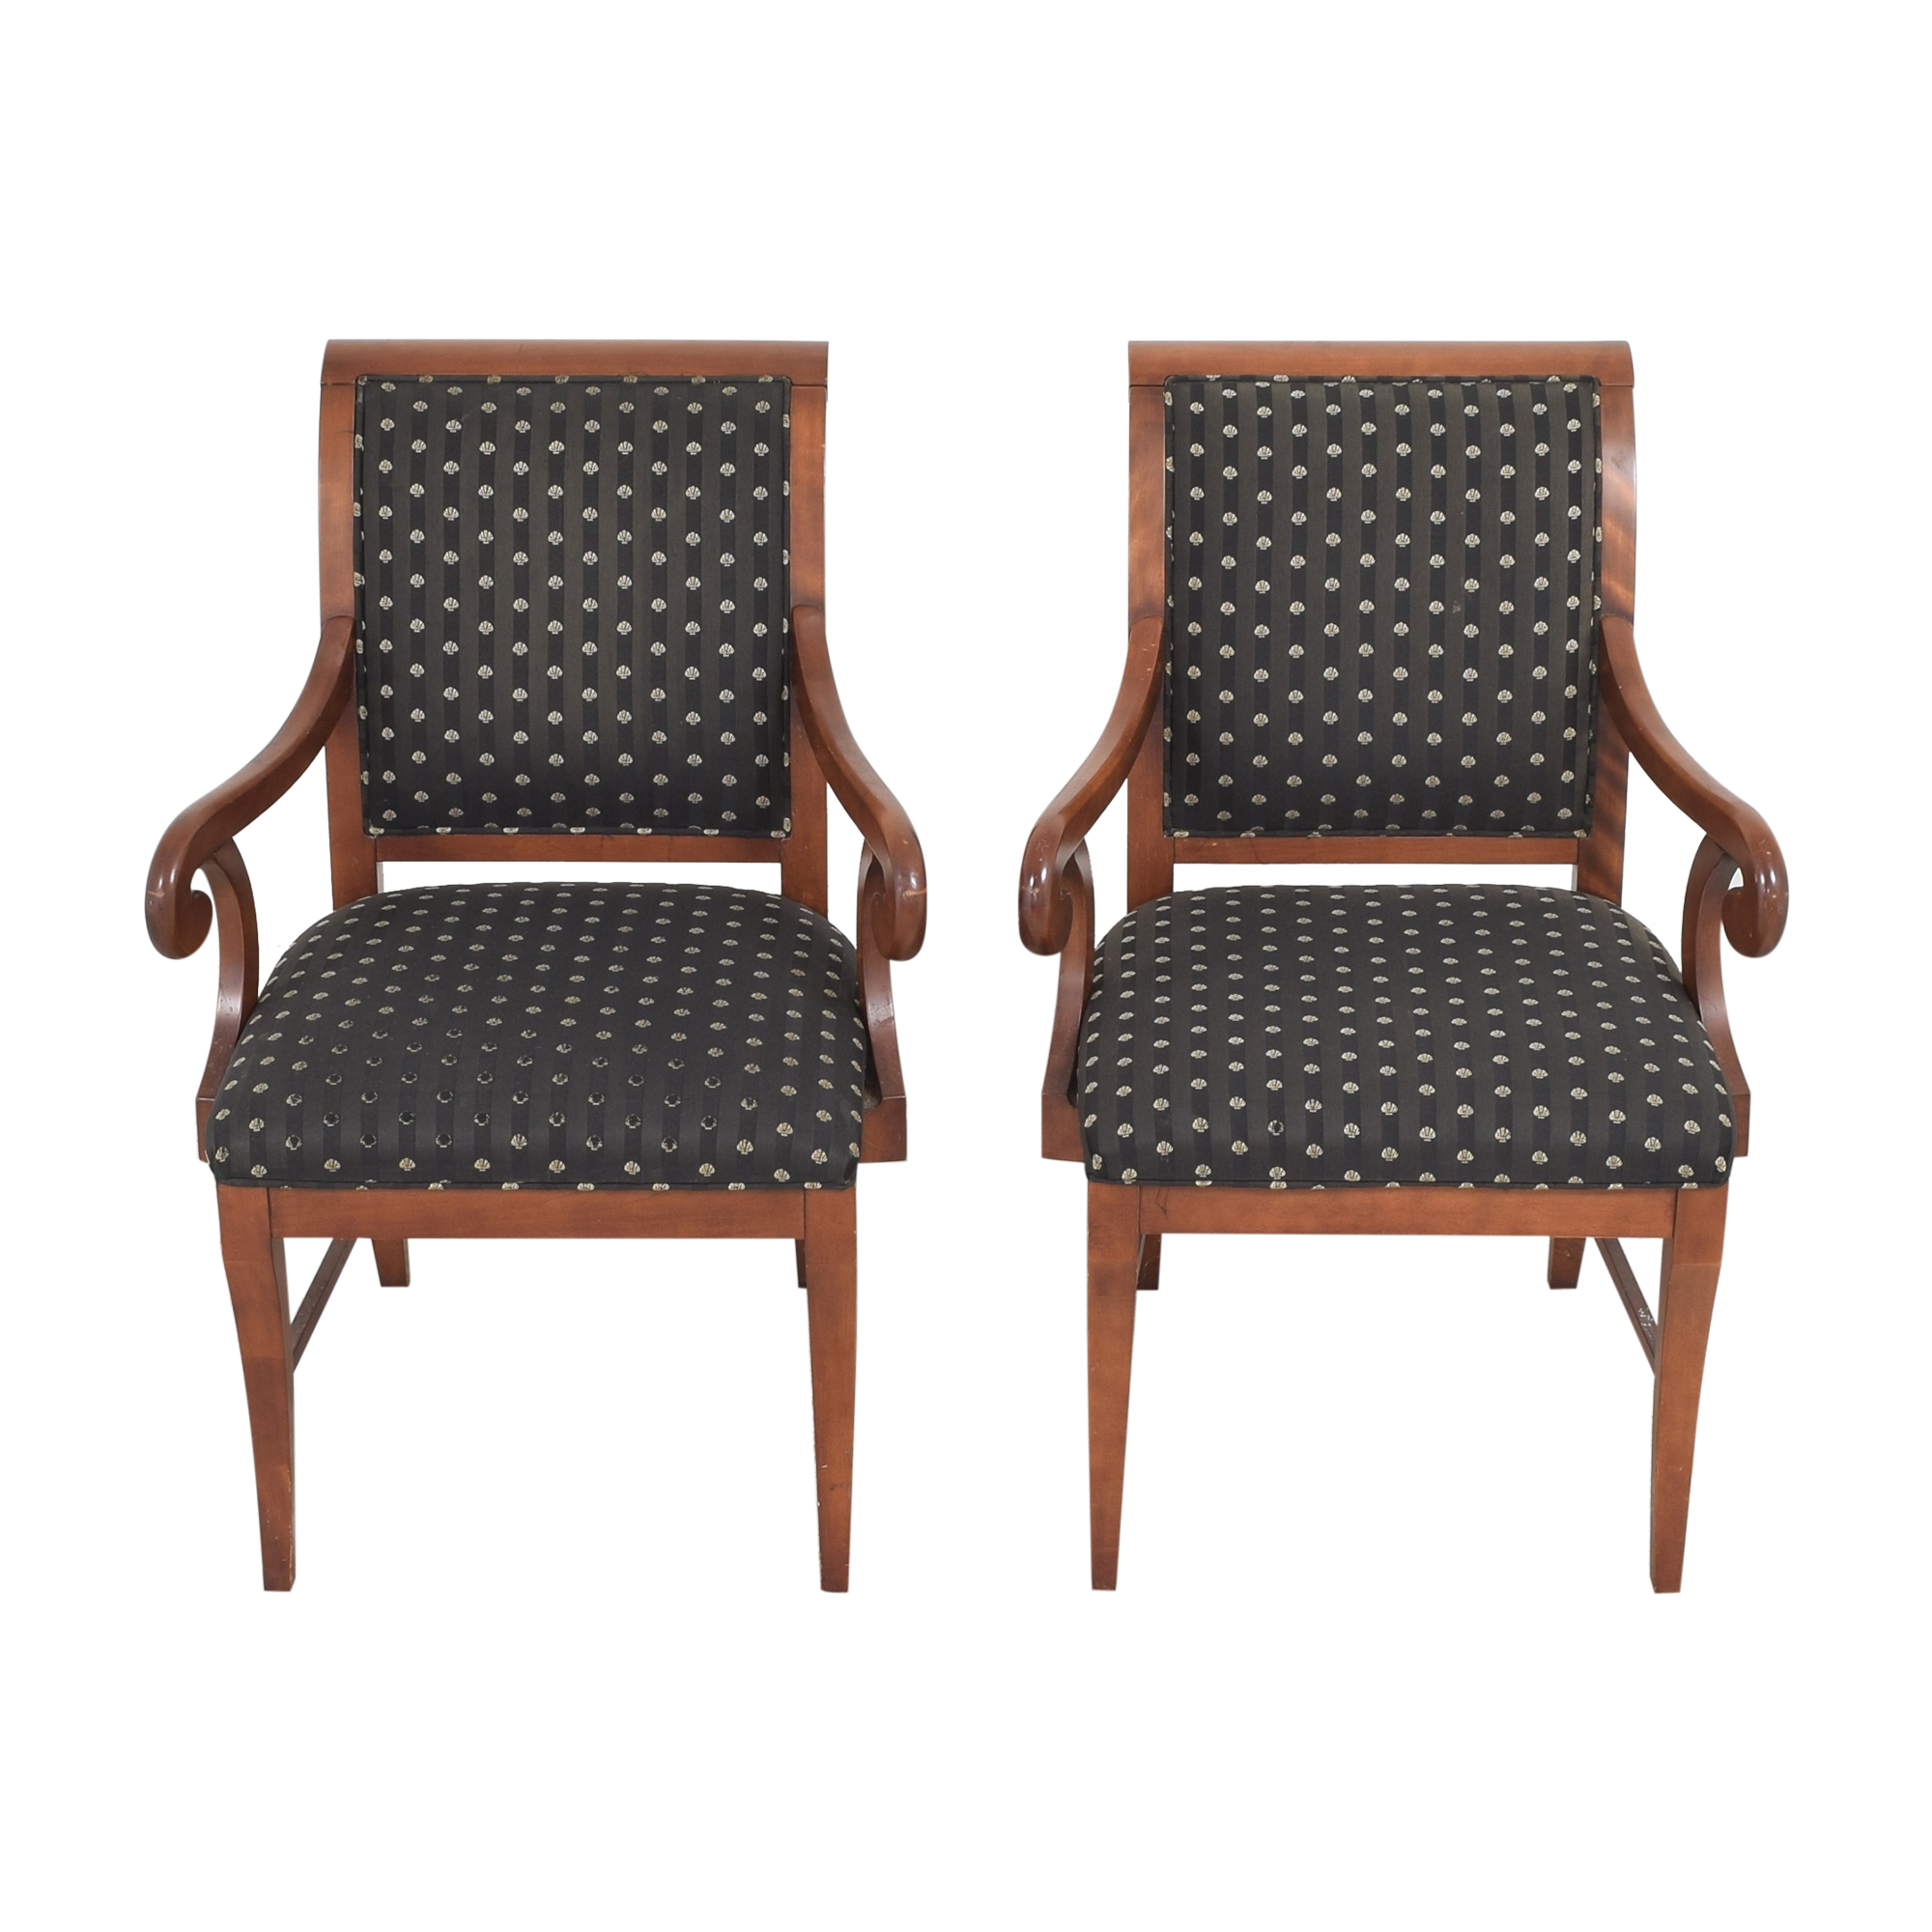 Leda Furniture Arm Chairs / Dining Chairs